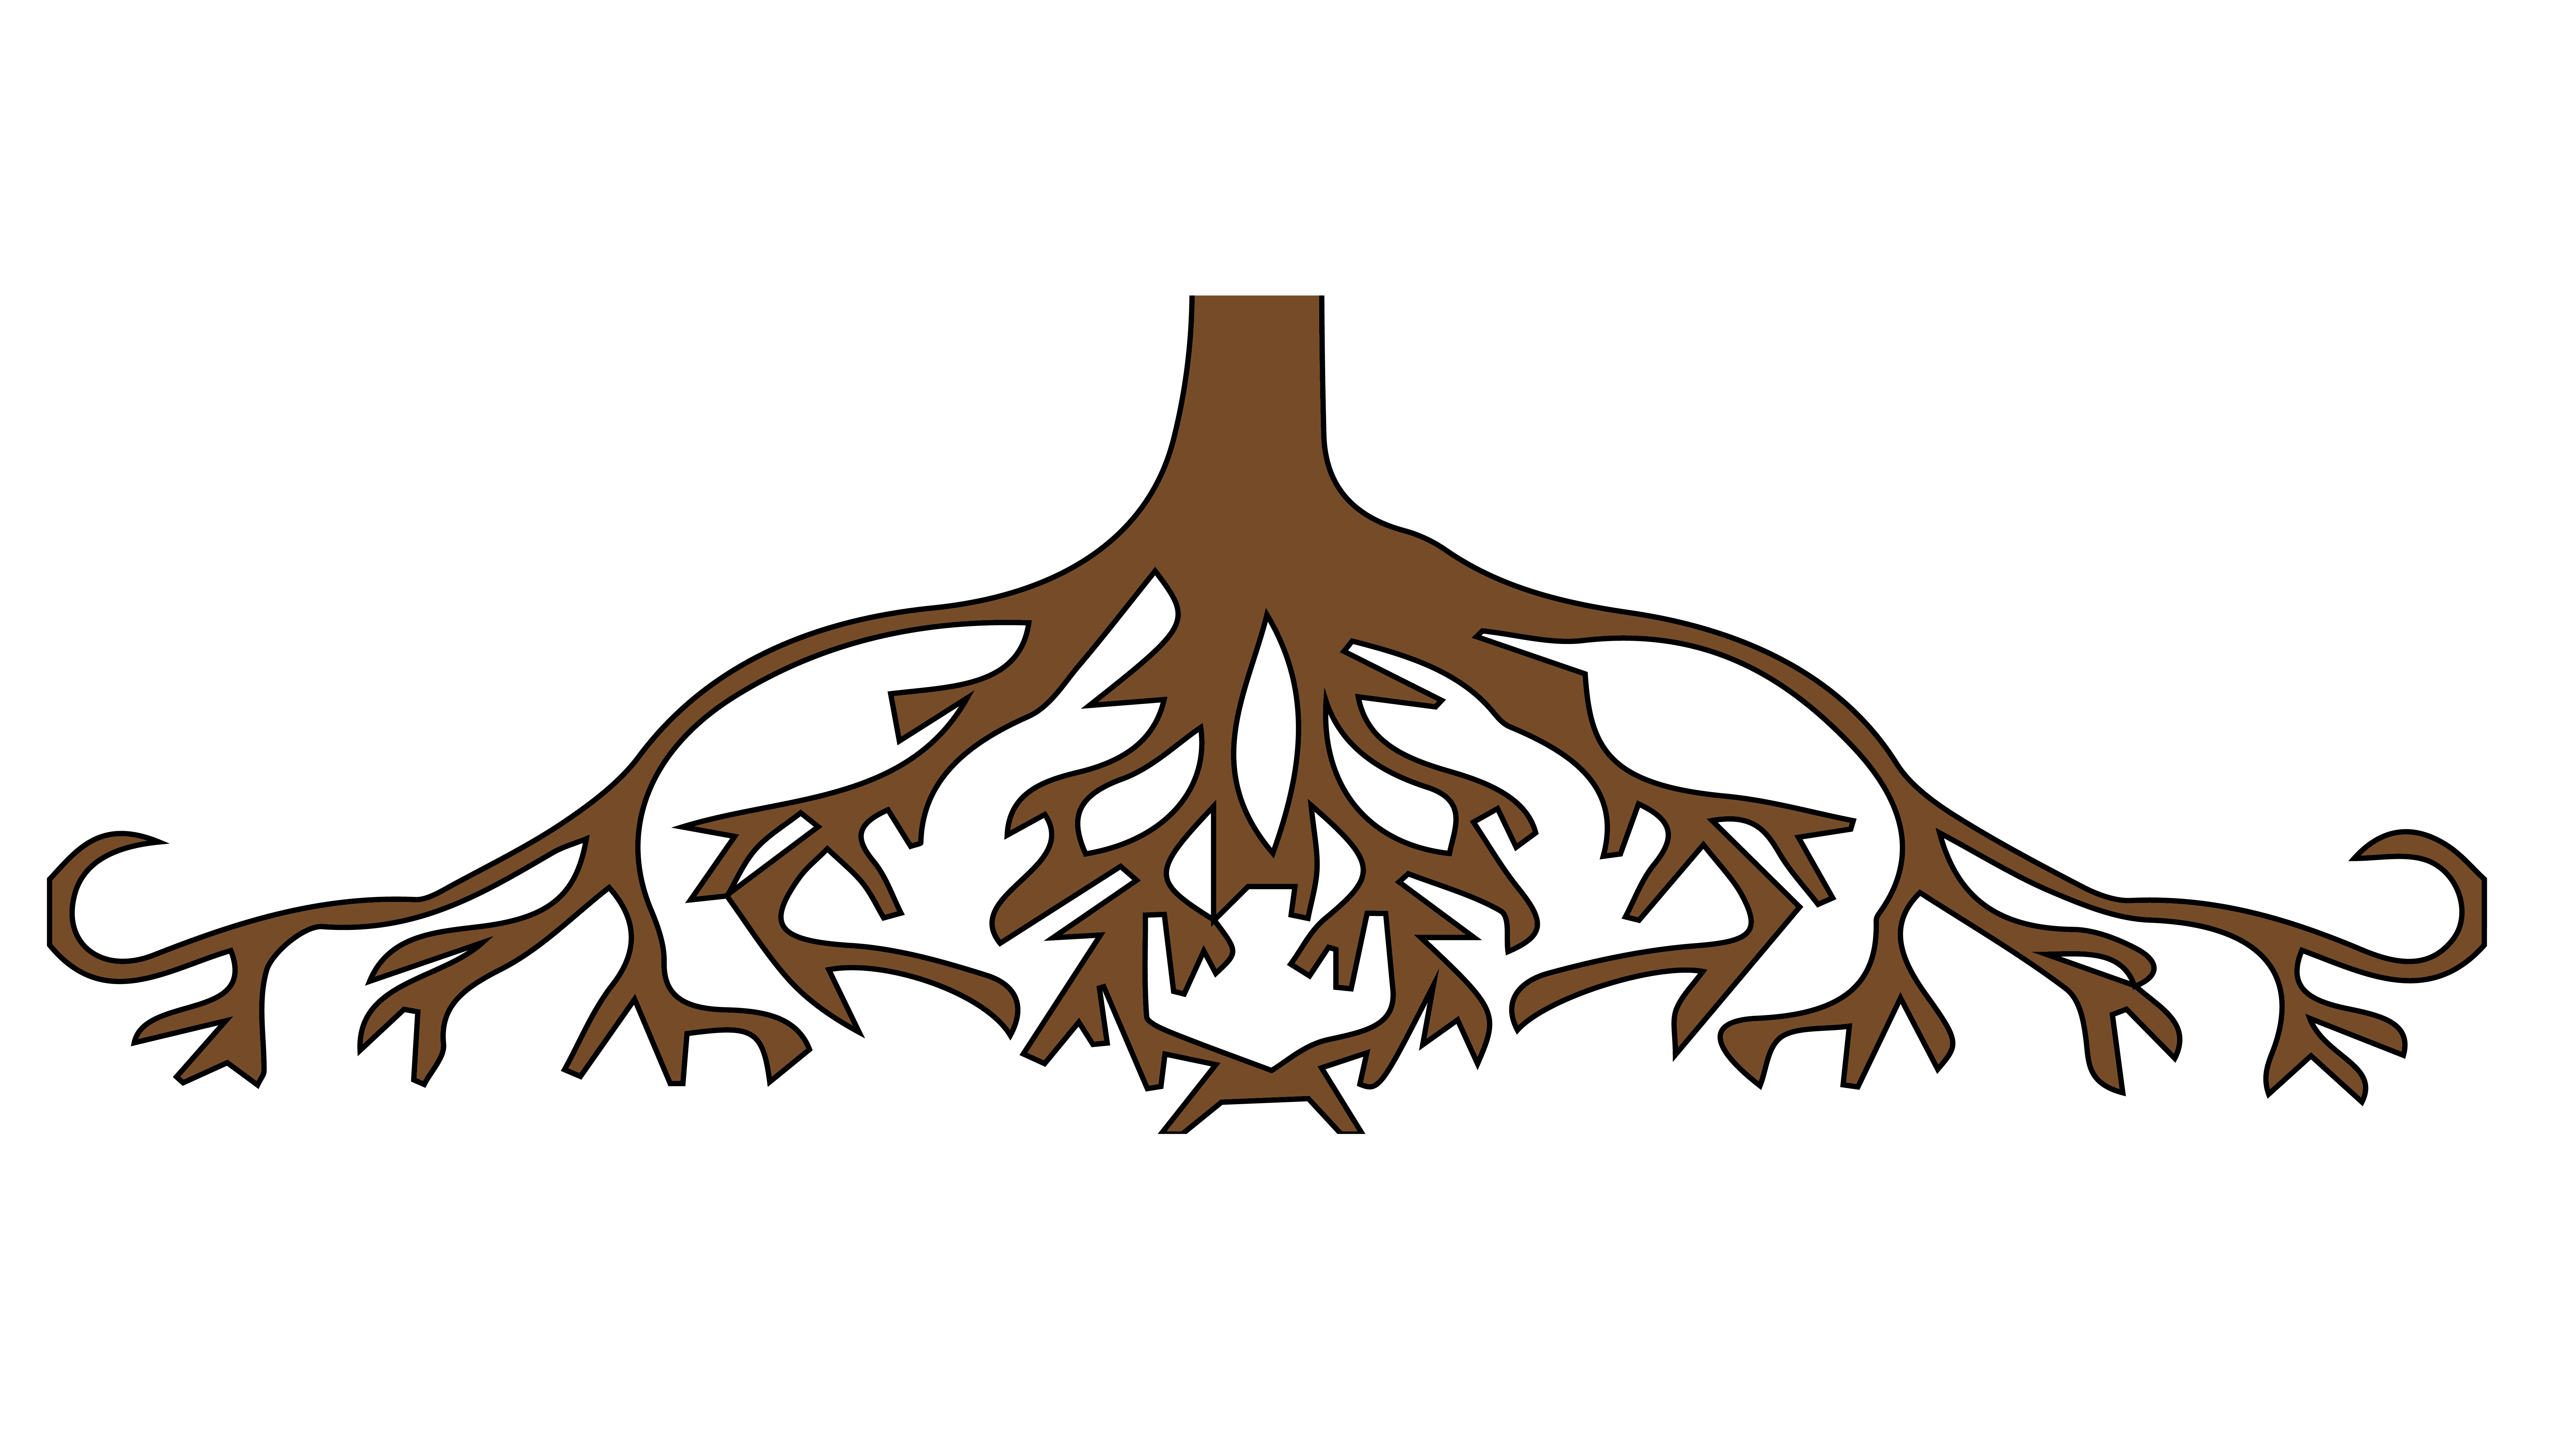 Tree roots clipart image library download Roots Clipart at GetDrawings.com | Free for personal use Roots ... image library download